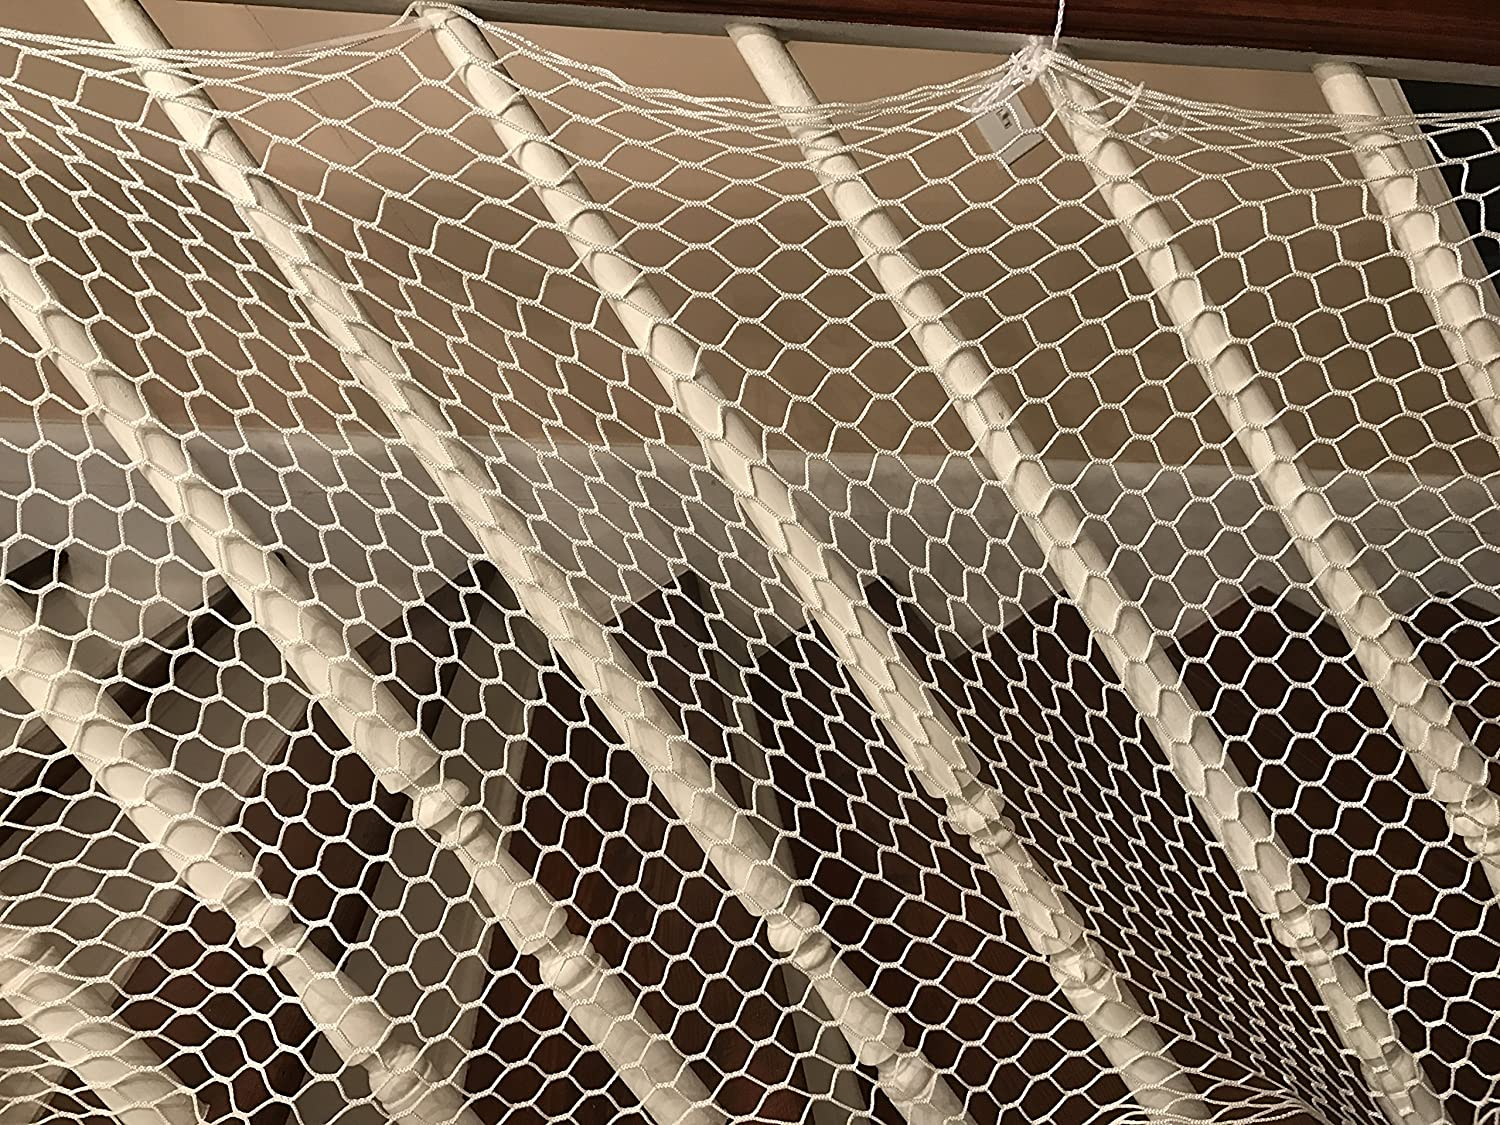 Awesome Amazon.com : Child Safety Railnet From Safe Tikes To Protect Children Or  Pets On Indoor/outdoor Stairs Or Balcony. Easy Install 3ftx16ft, Durable  Netting, ...